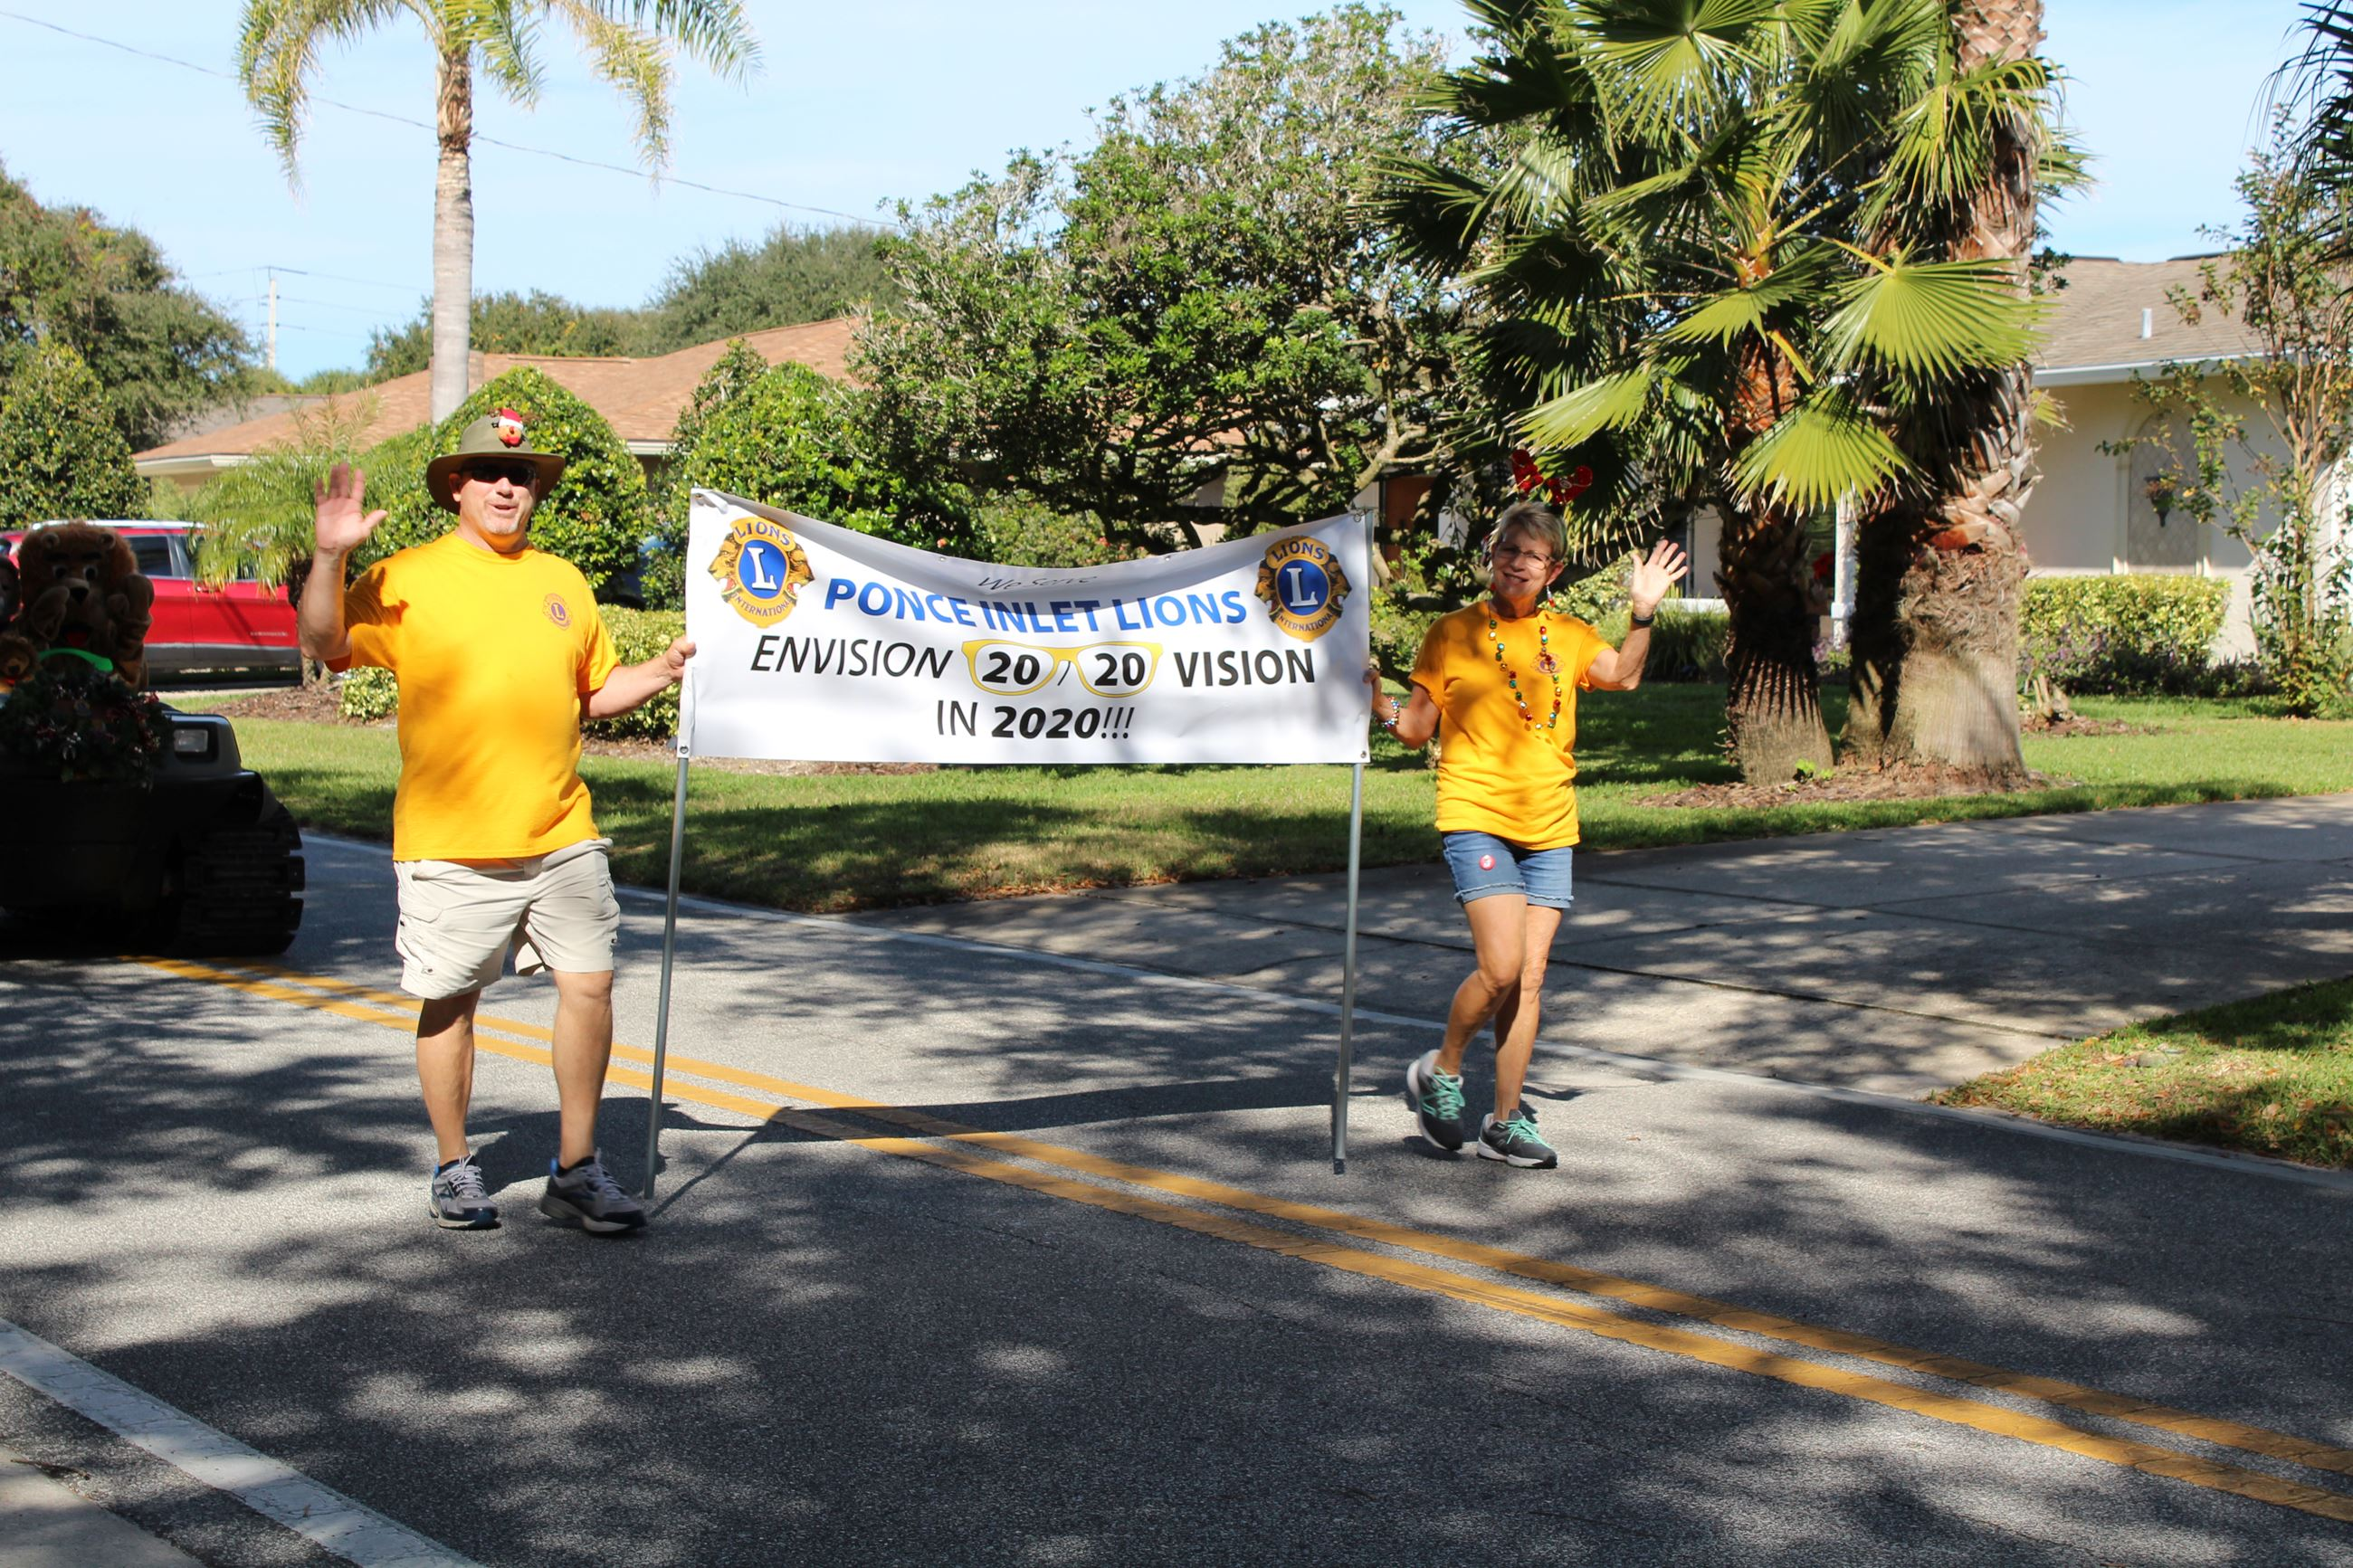 Two adults with yellow tshirts carrying banner